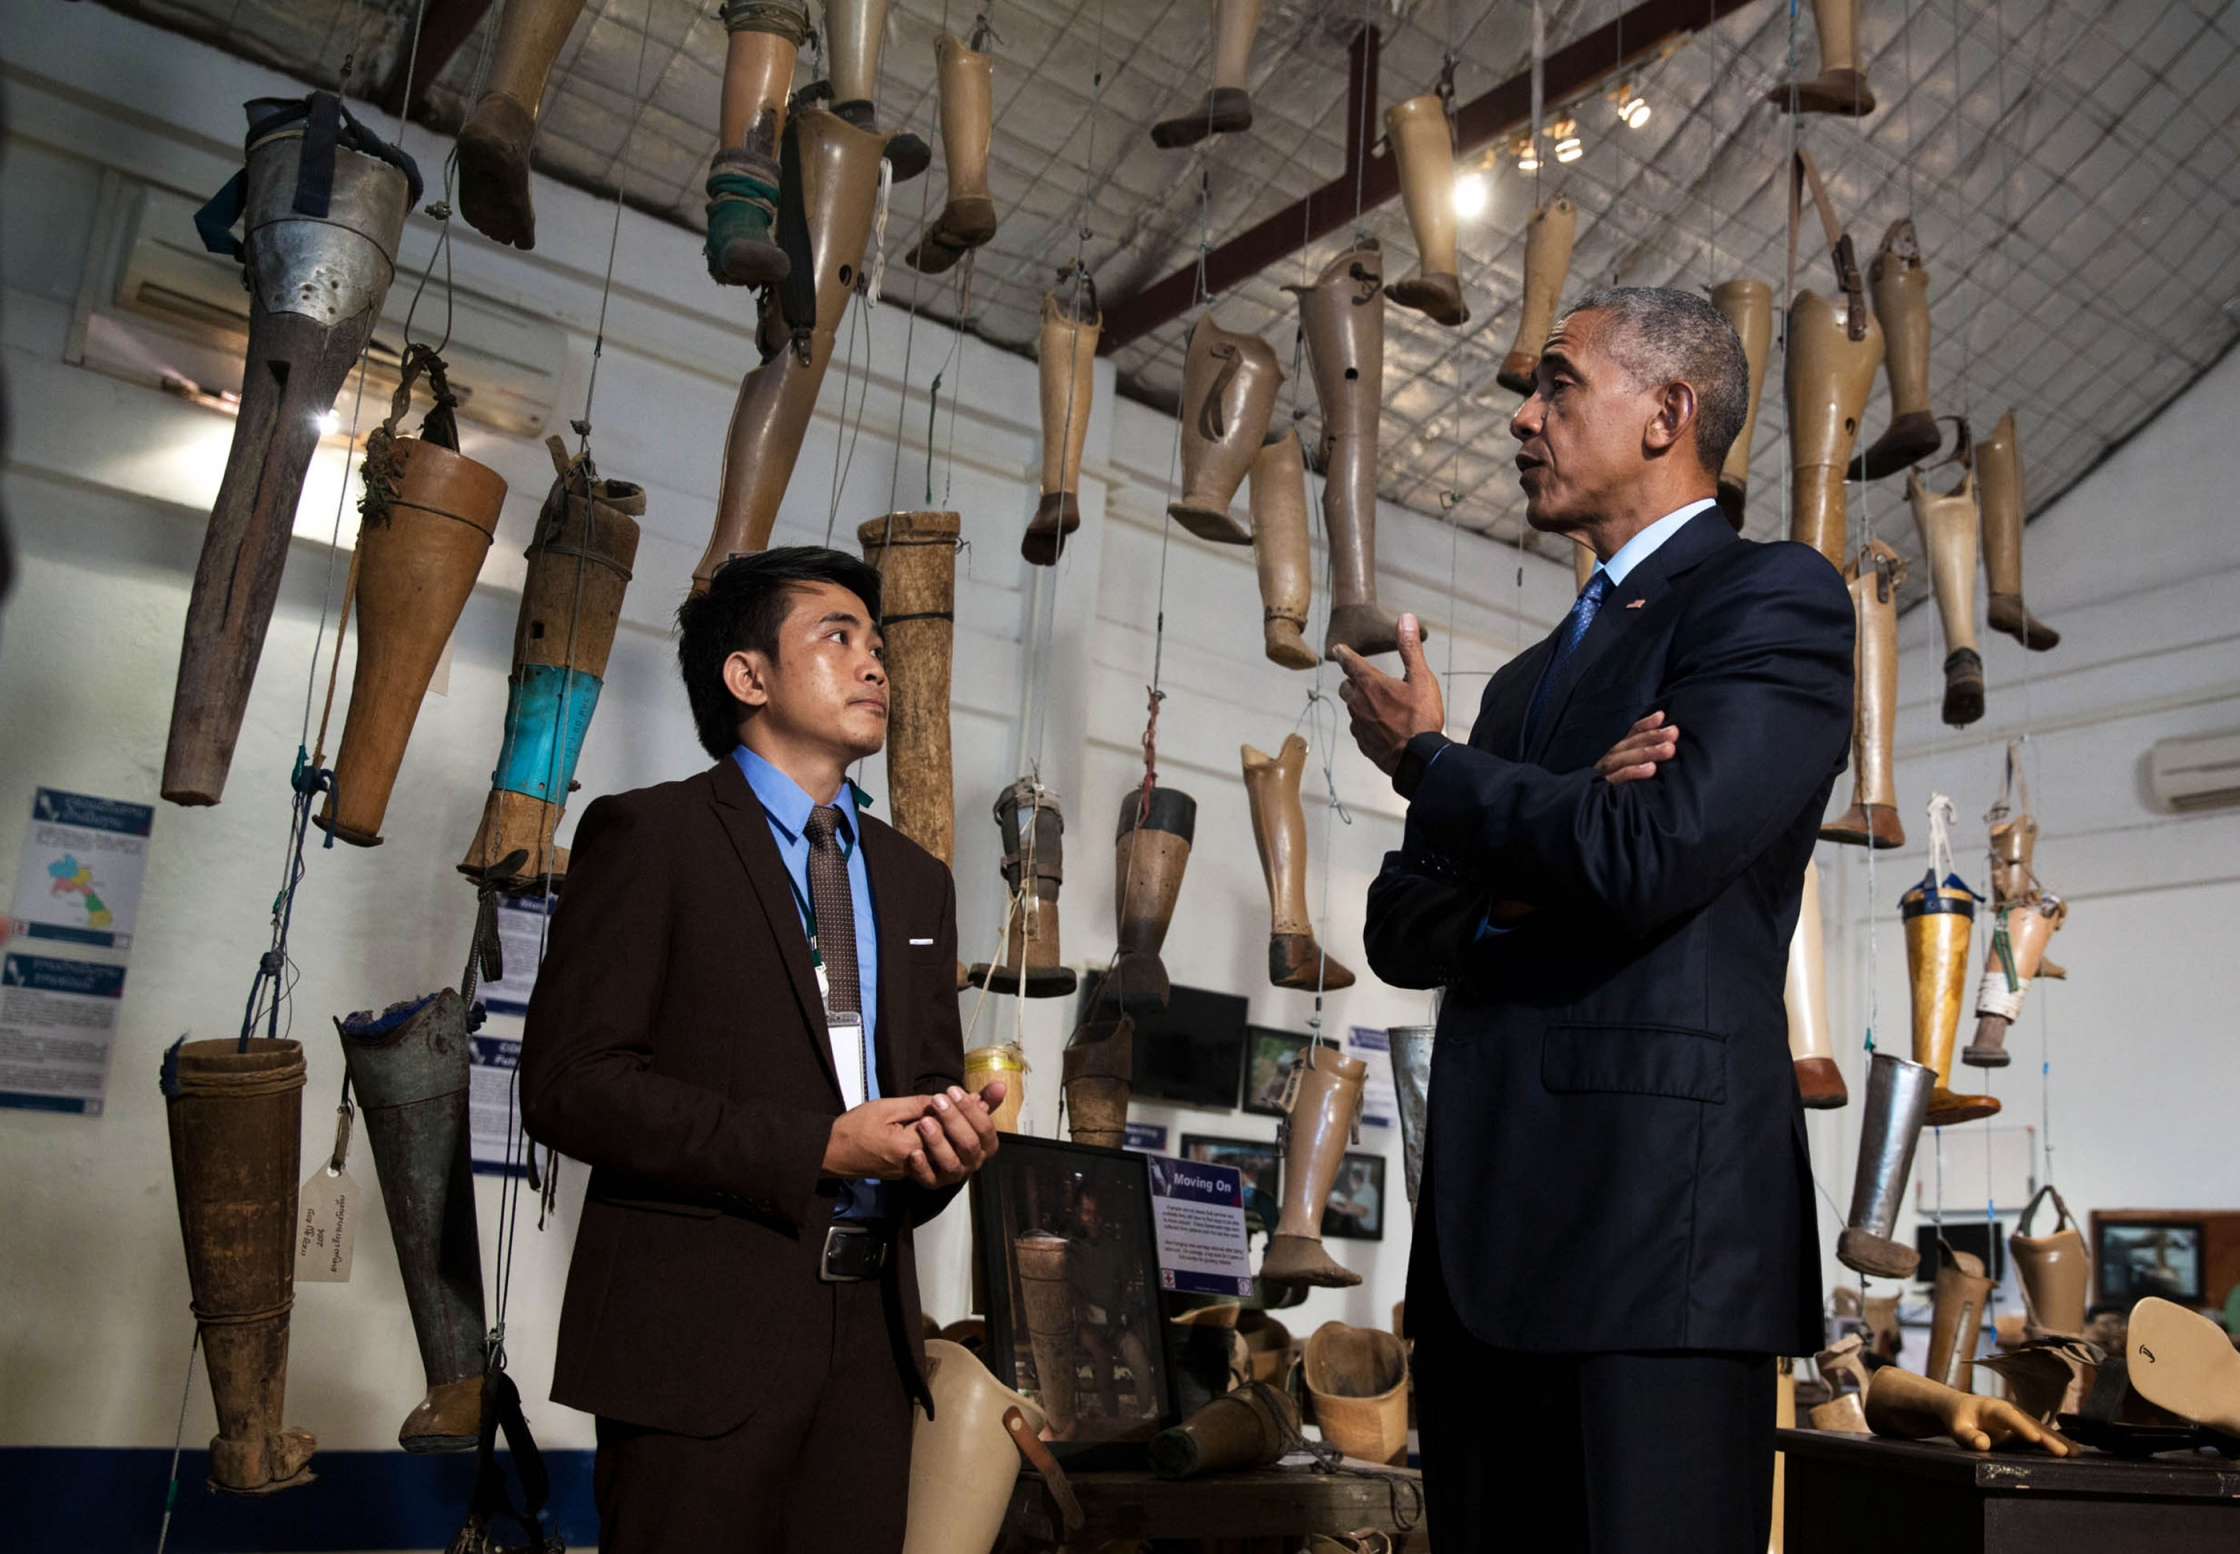 President Barack Obama meets with unexploded ordnance survivor Thoummy Silamphan from the Quality of Life Association, as he tours the Cooperative Orthotic Prosthetic Enterprise (COPE) Visitor Centre to meet with unexploded ordnance clearance teams and survivors of blasts, in Vientiane, Laos, Sept. 7, 2016. (Official White House Photo by Chuck Kennedy)